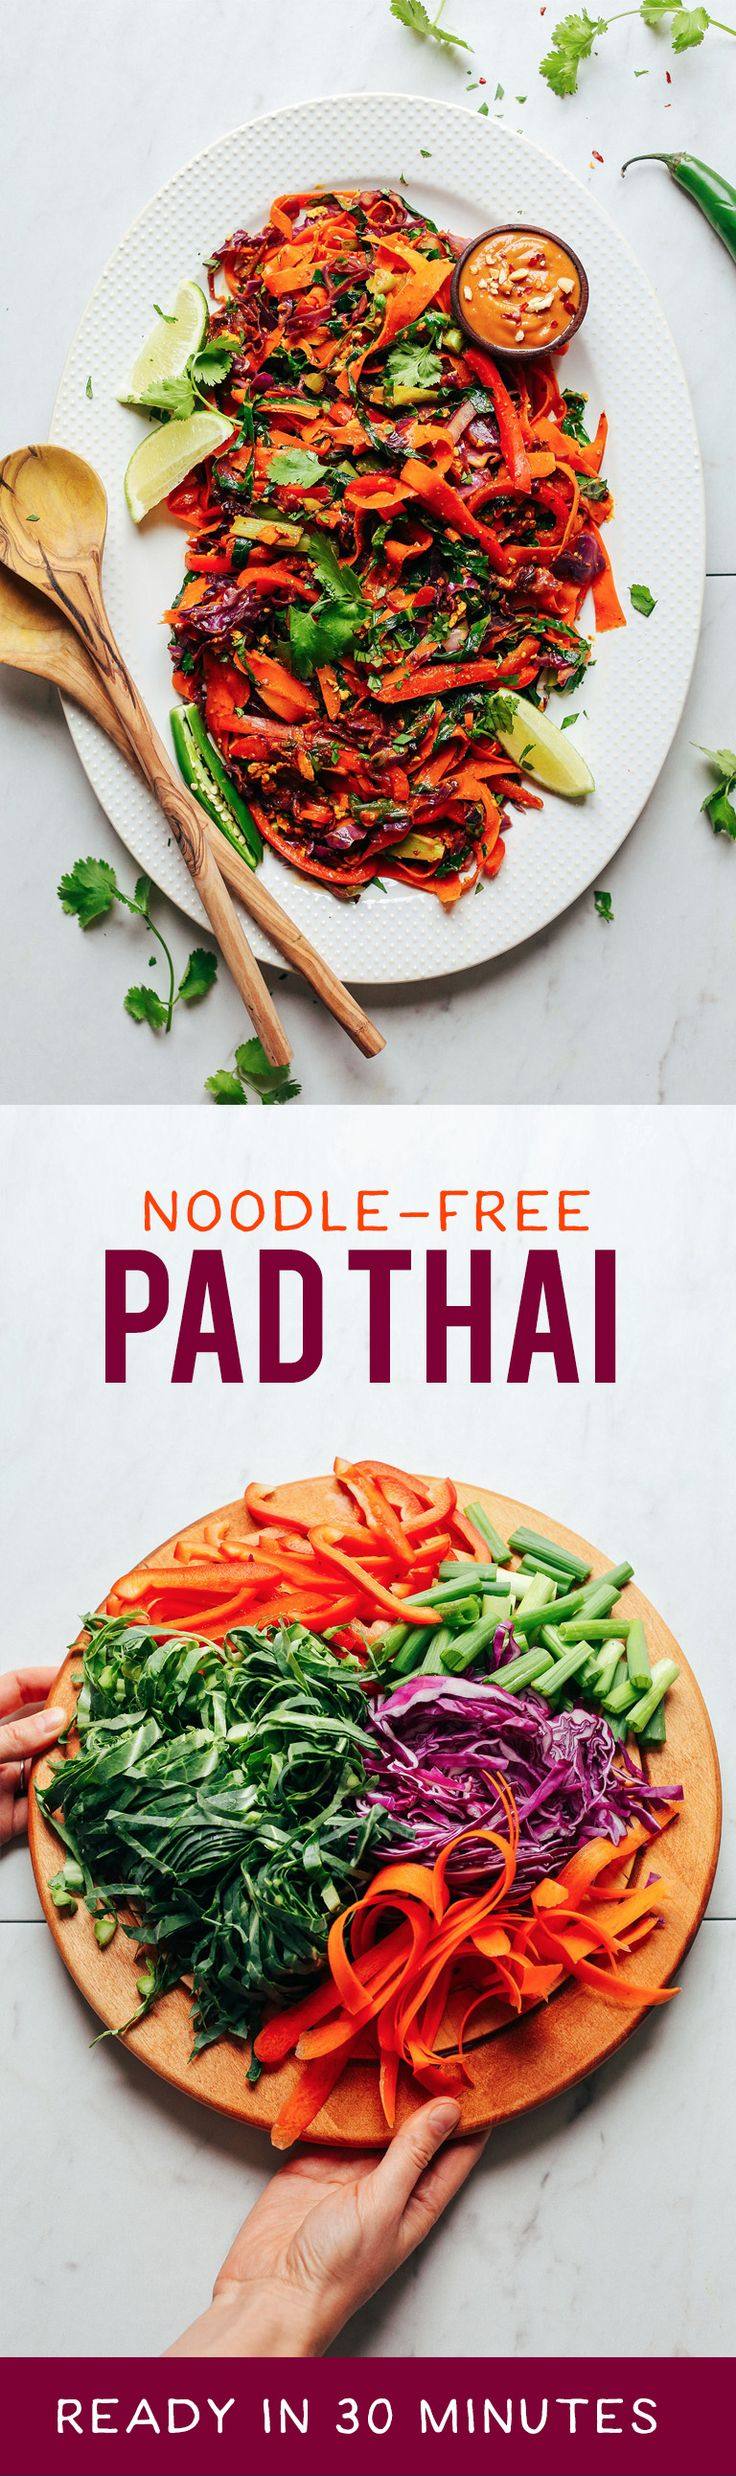 INCREDIBLE Noodle-Free Pad Thai! 30 minutes, entirely #plantbased, SO delicious! #vegan #glutenfree #padthai #minimalistbaker #recipe